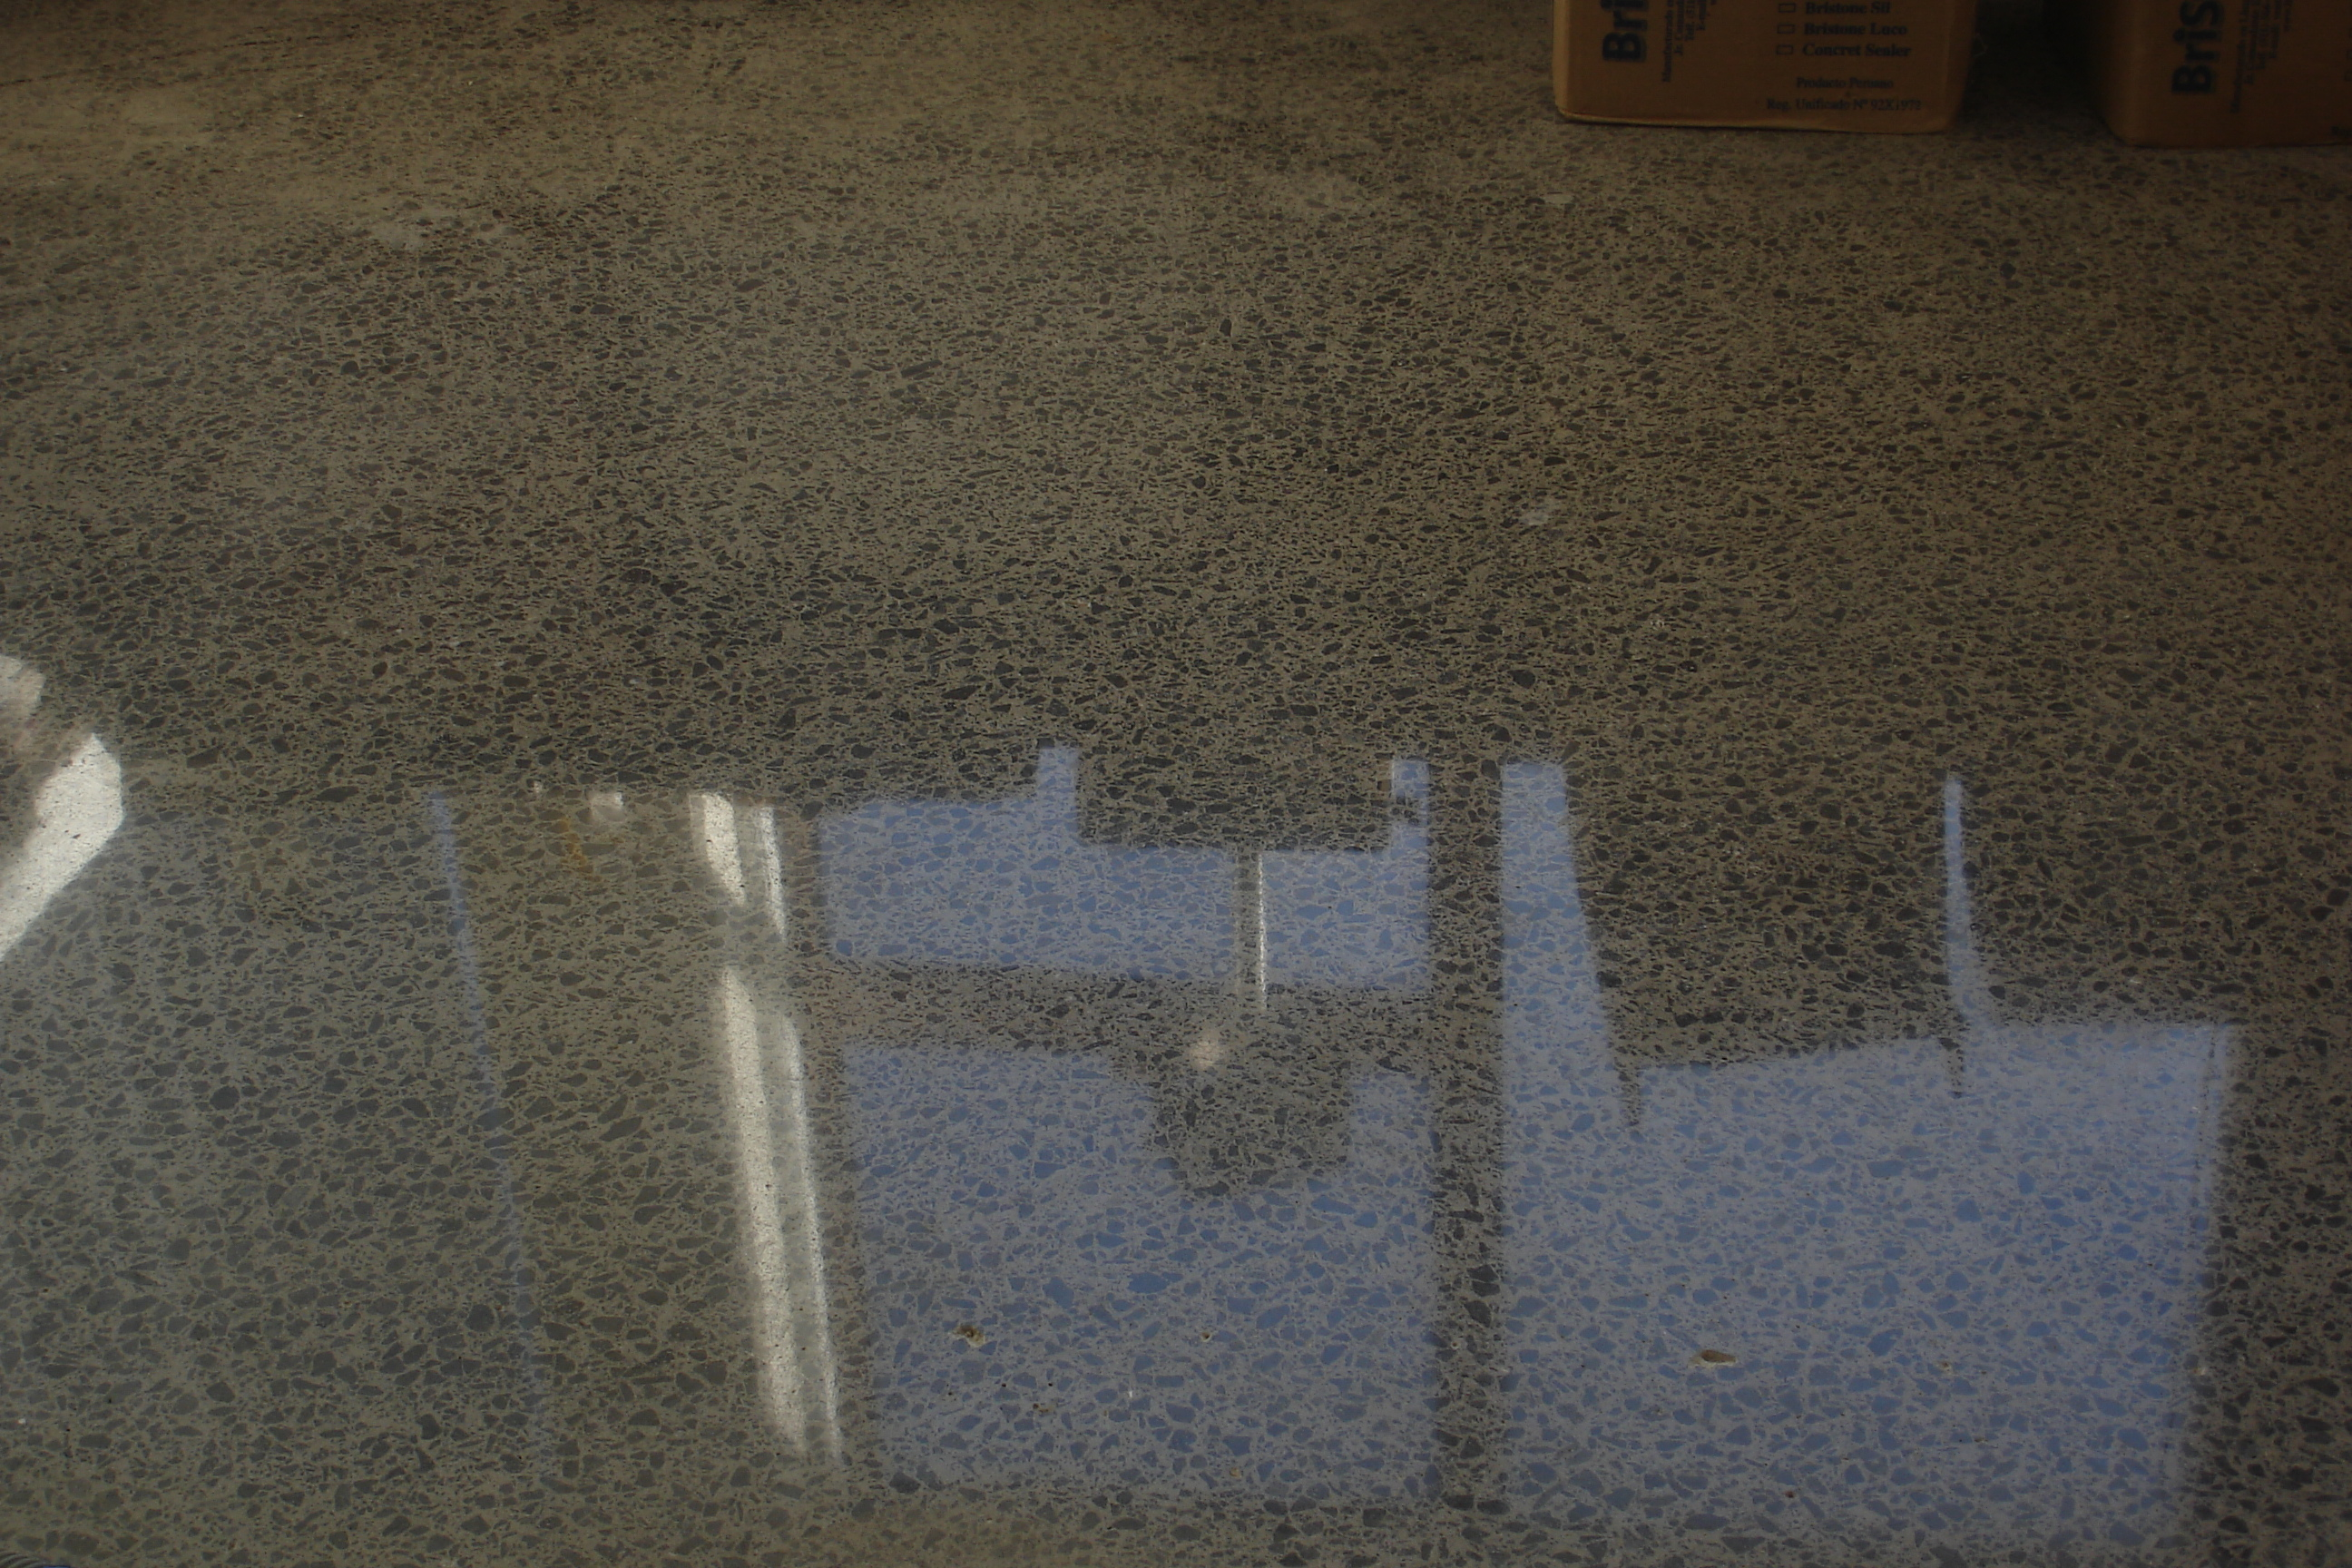 BriStone on honed and polished concrete, high traffic area and installed for over a year with no cleaning.